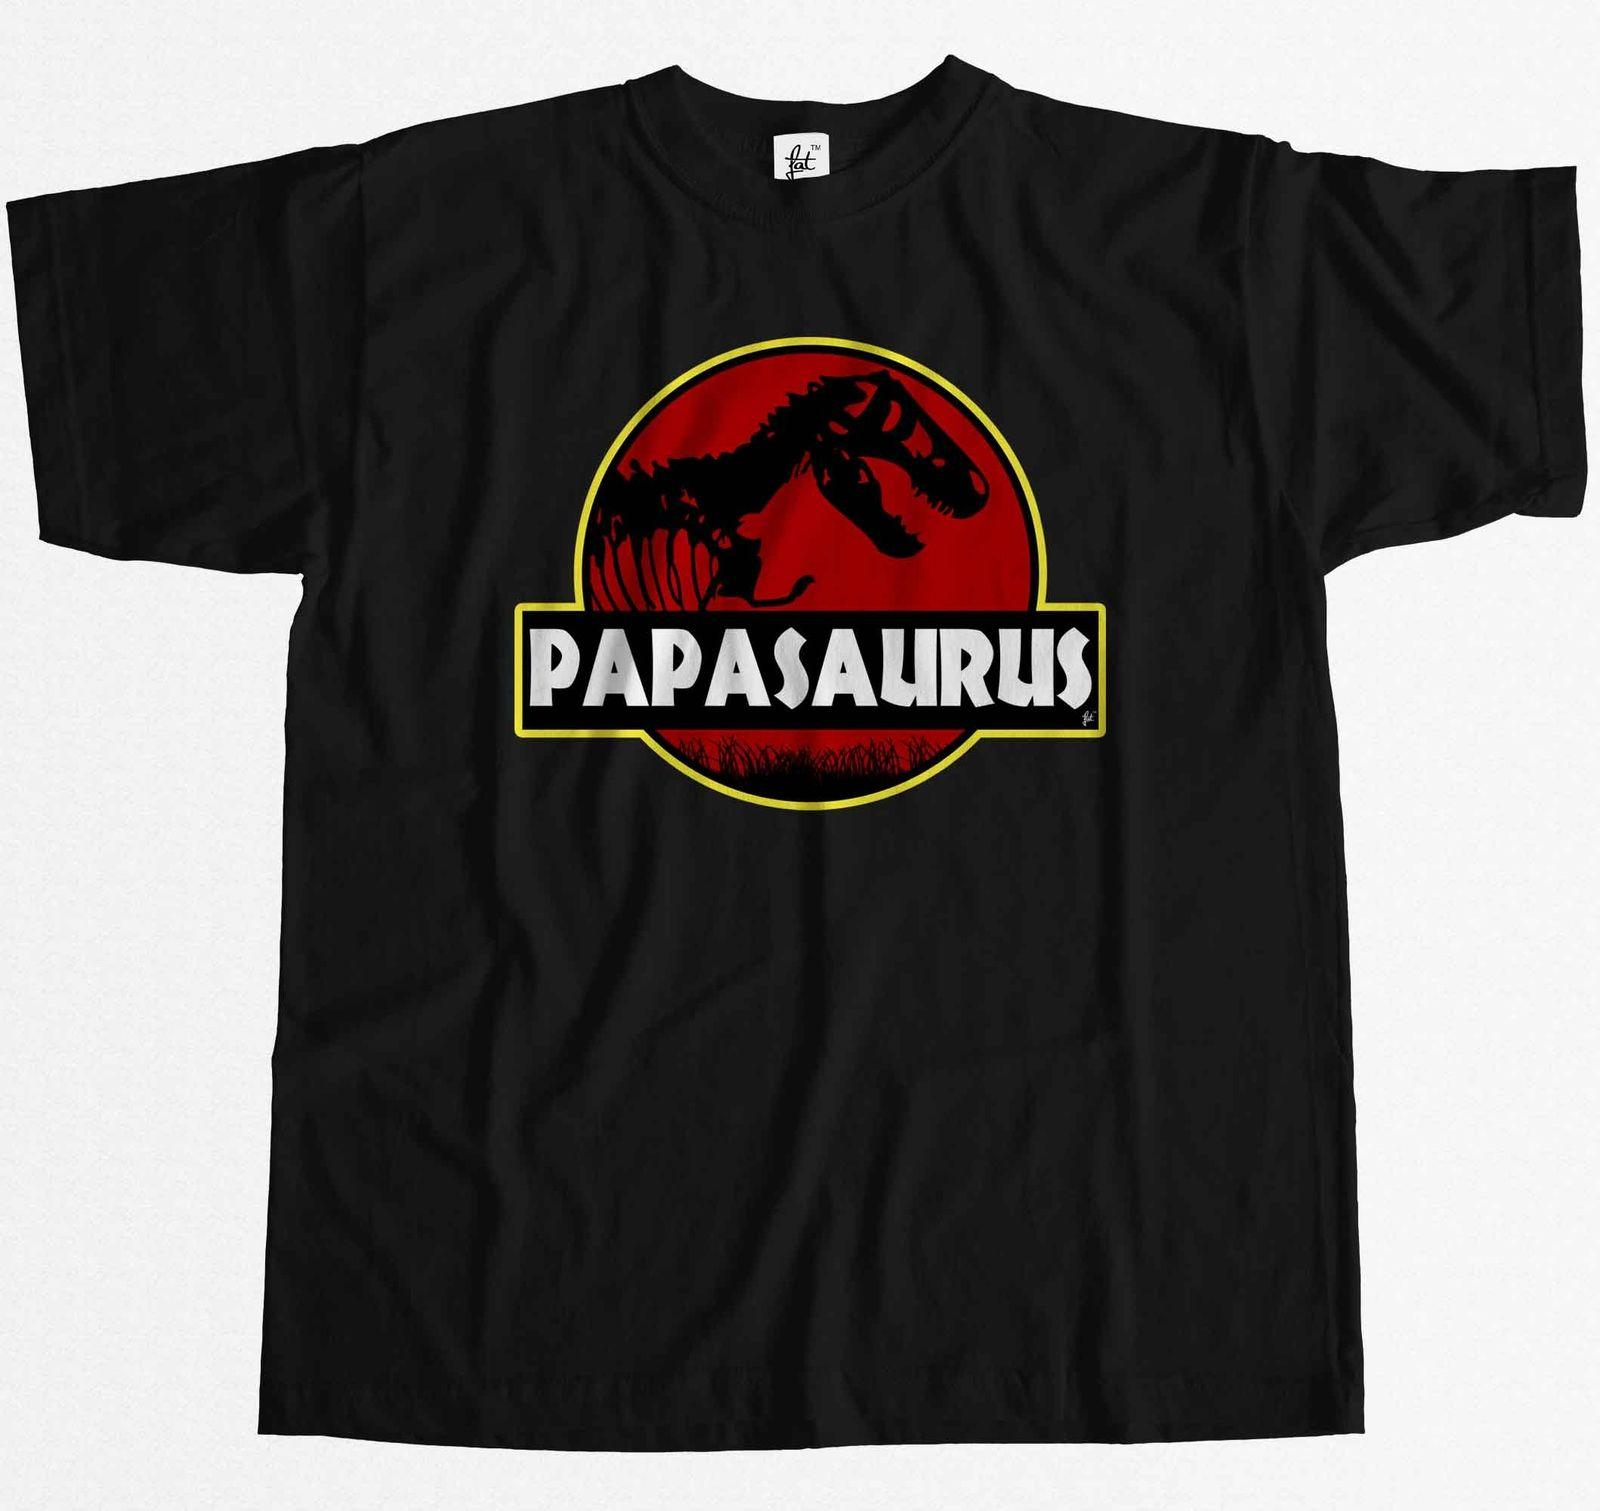 b050806b Papasauras Funny Dad Fathers Day T Rex Old Dinosaur Mens T Shirt Funny  Unisex Casual Shirt T Shirt Tee From Rocktothetop, $10.28| DHgate.Com